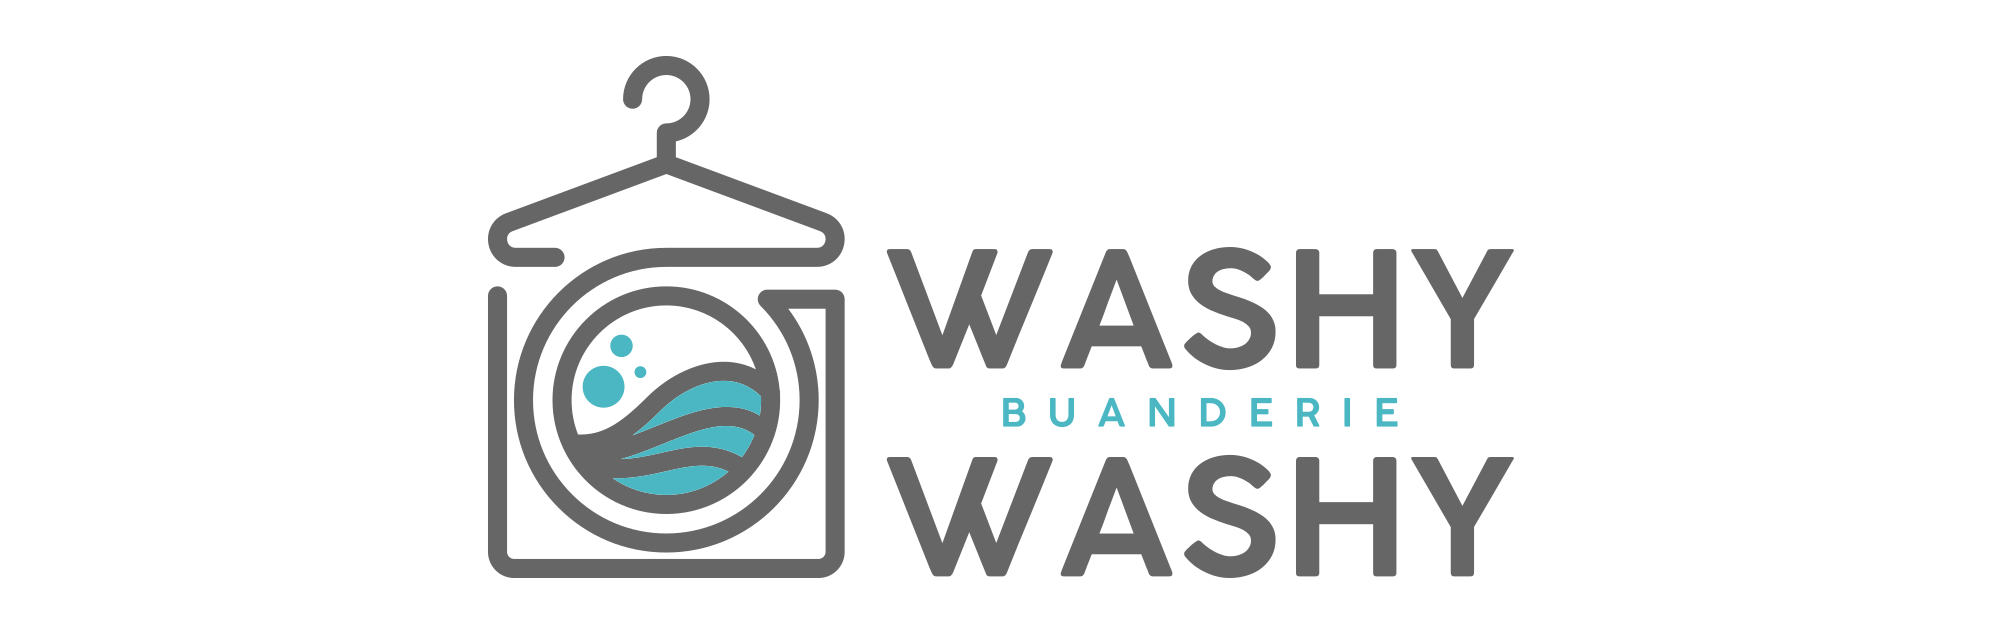 Baunderie Washy Washy laundry pickup and delivery service in Montreal Canada